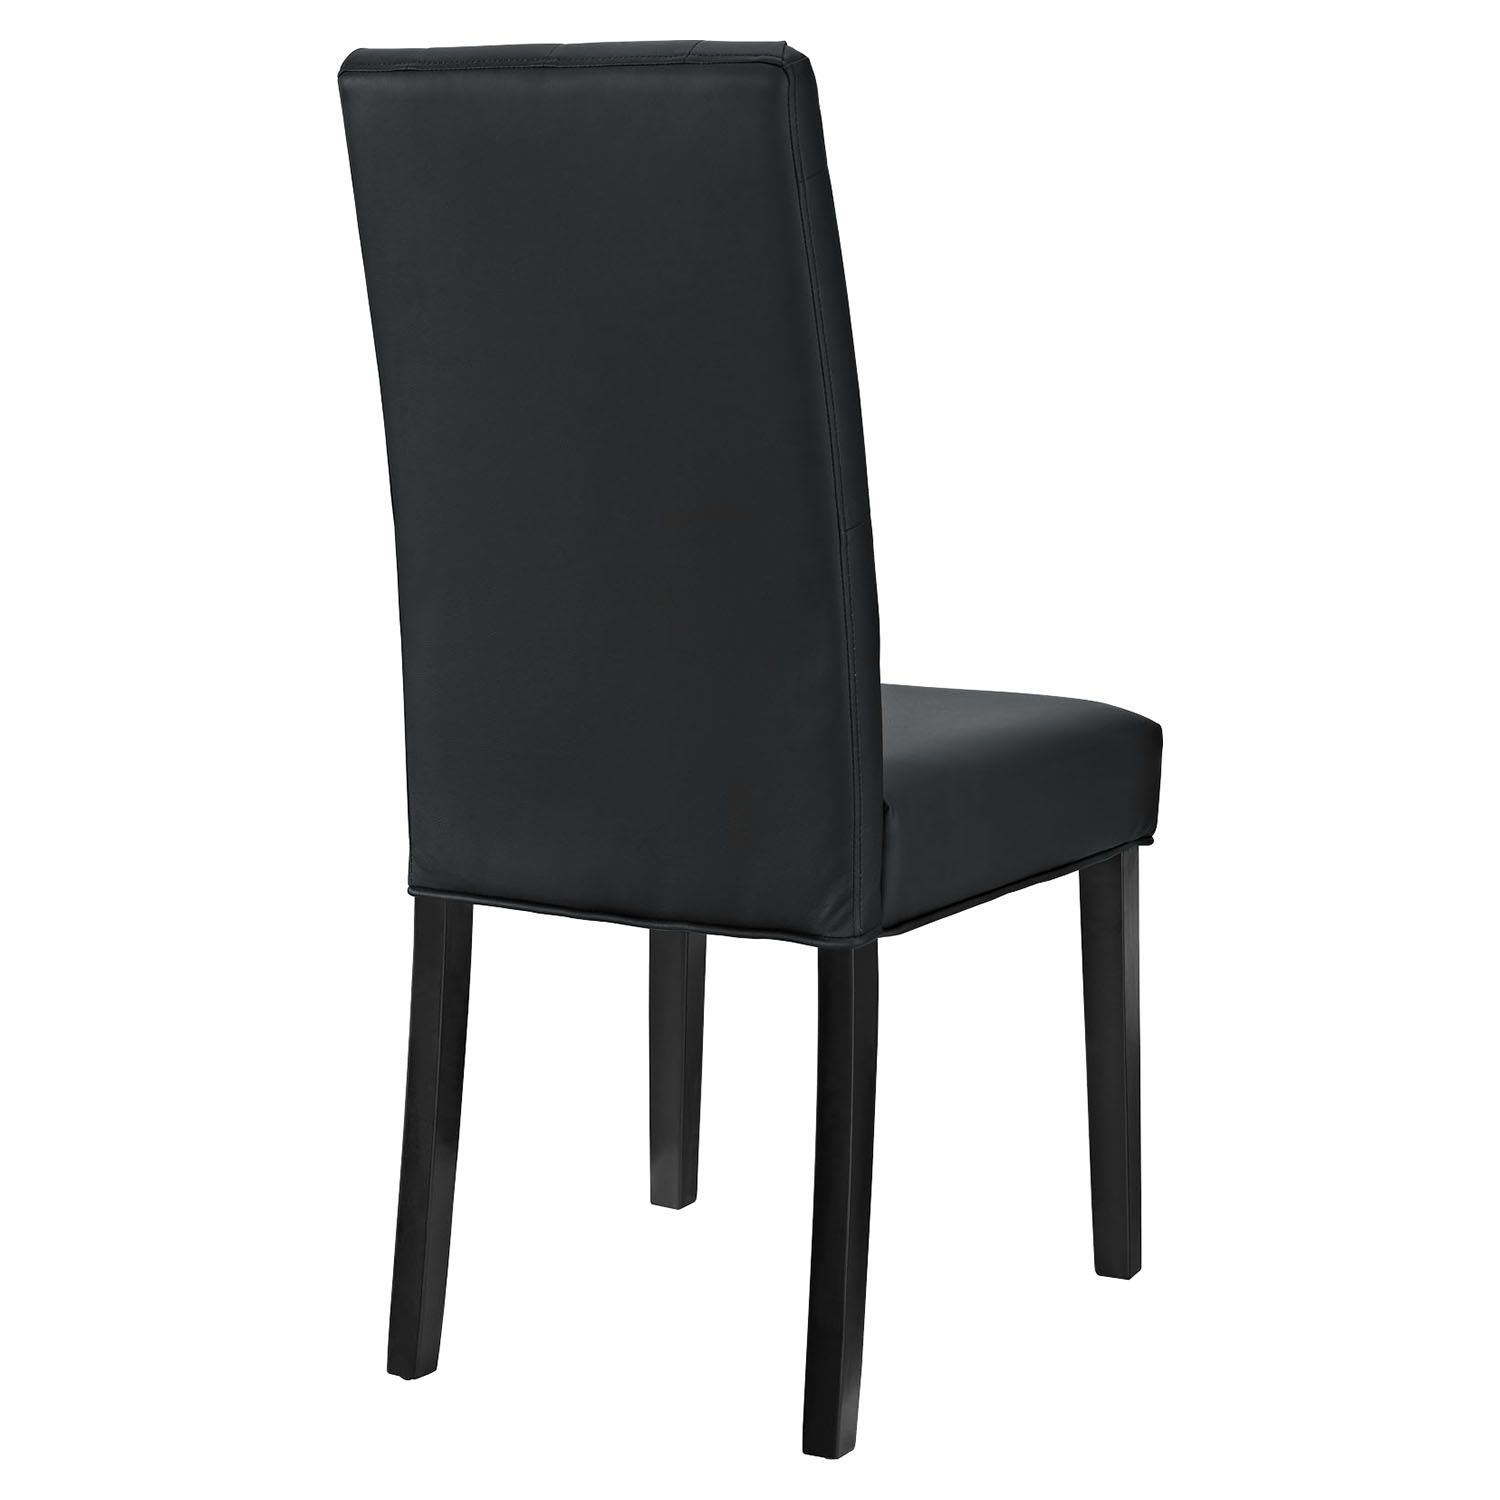 Confer Leatherette Side Chair - Button Tufted, Black - EEI-1382-BLK